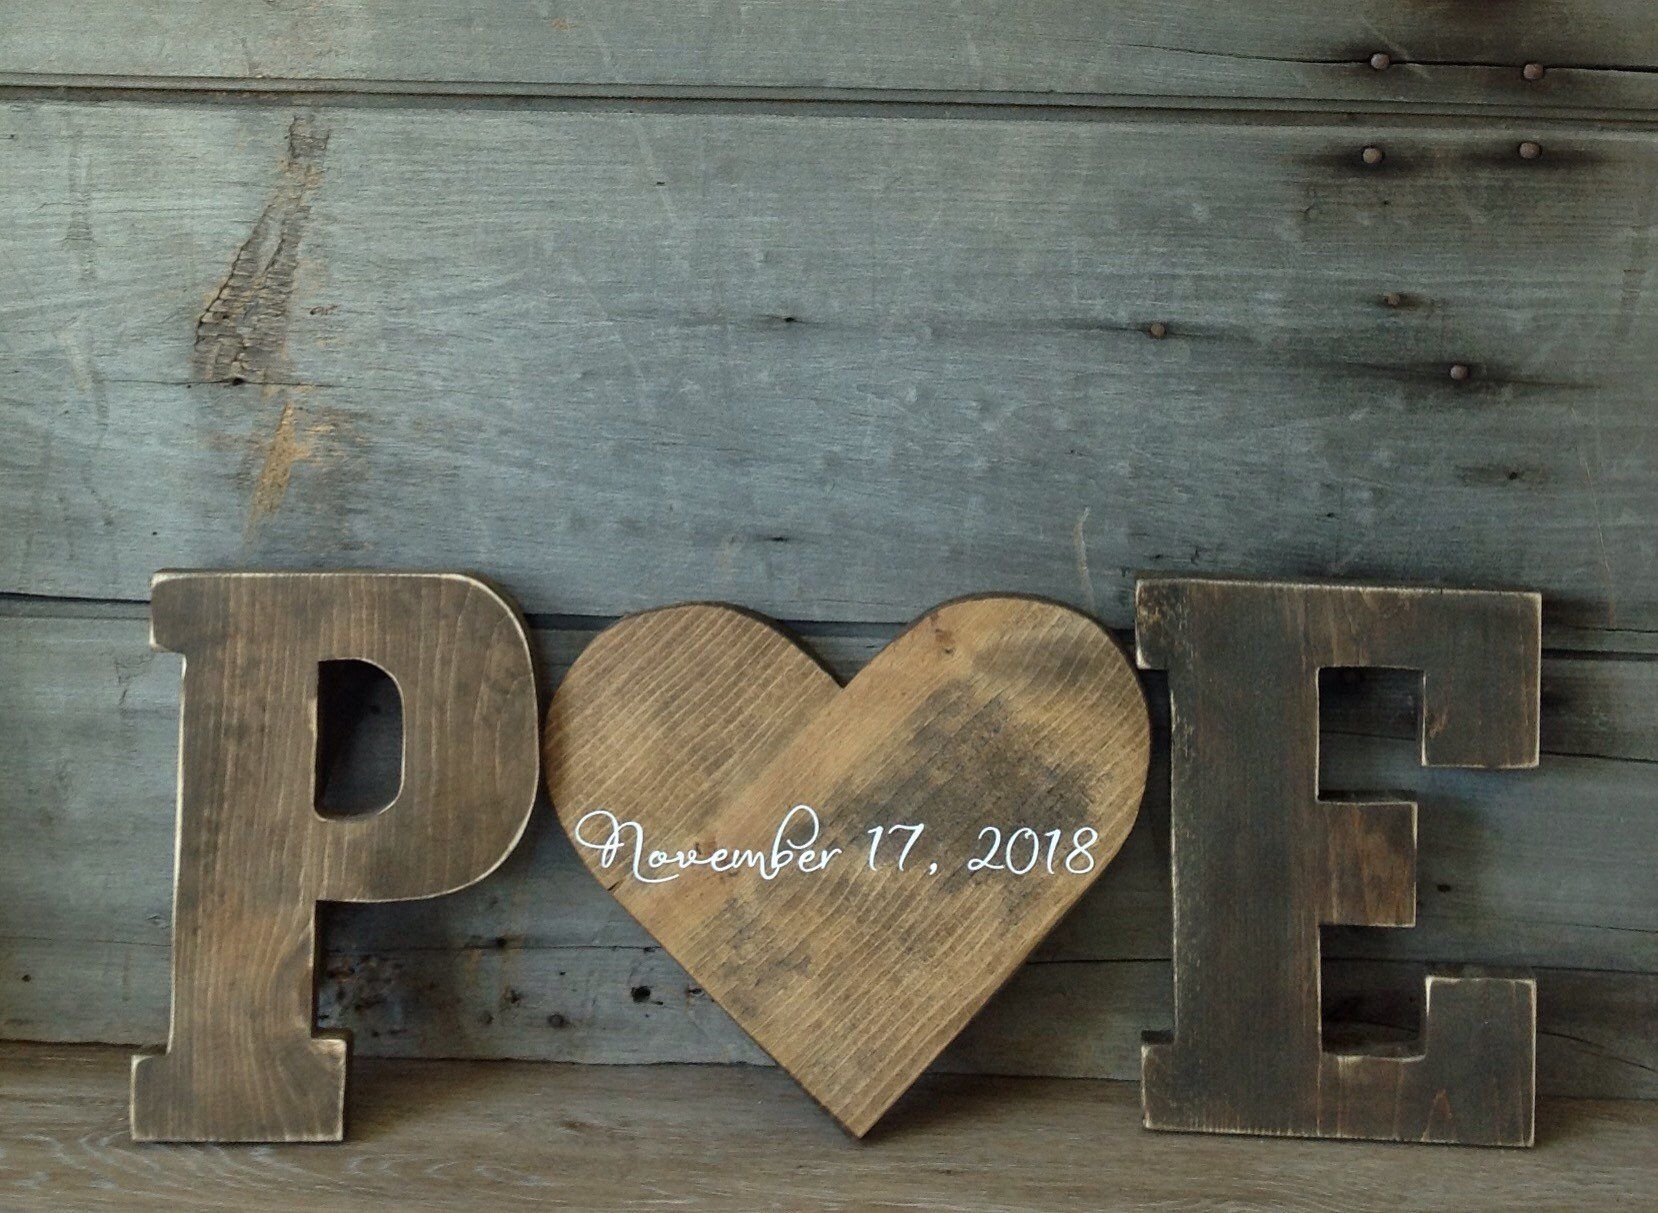 Barn Wood Letters Measuring 12 Inches Tall 2 Letters And A Etsy Rustic Letters Barn Wood Wood Letters